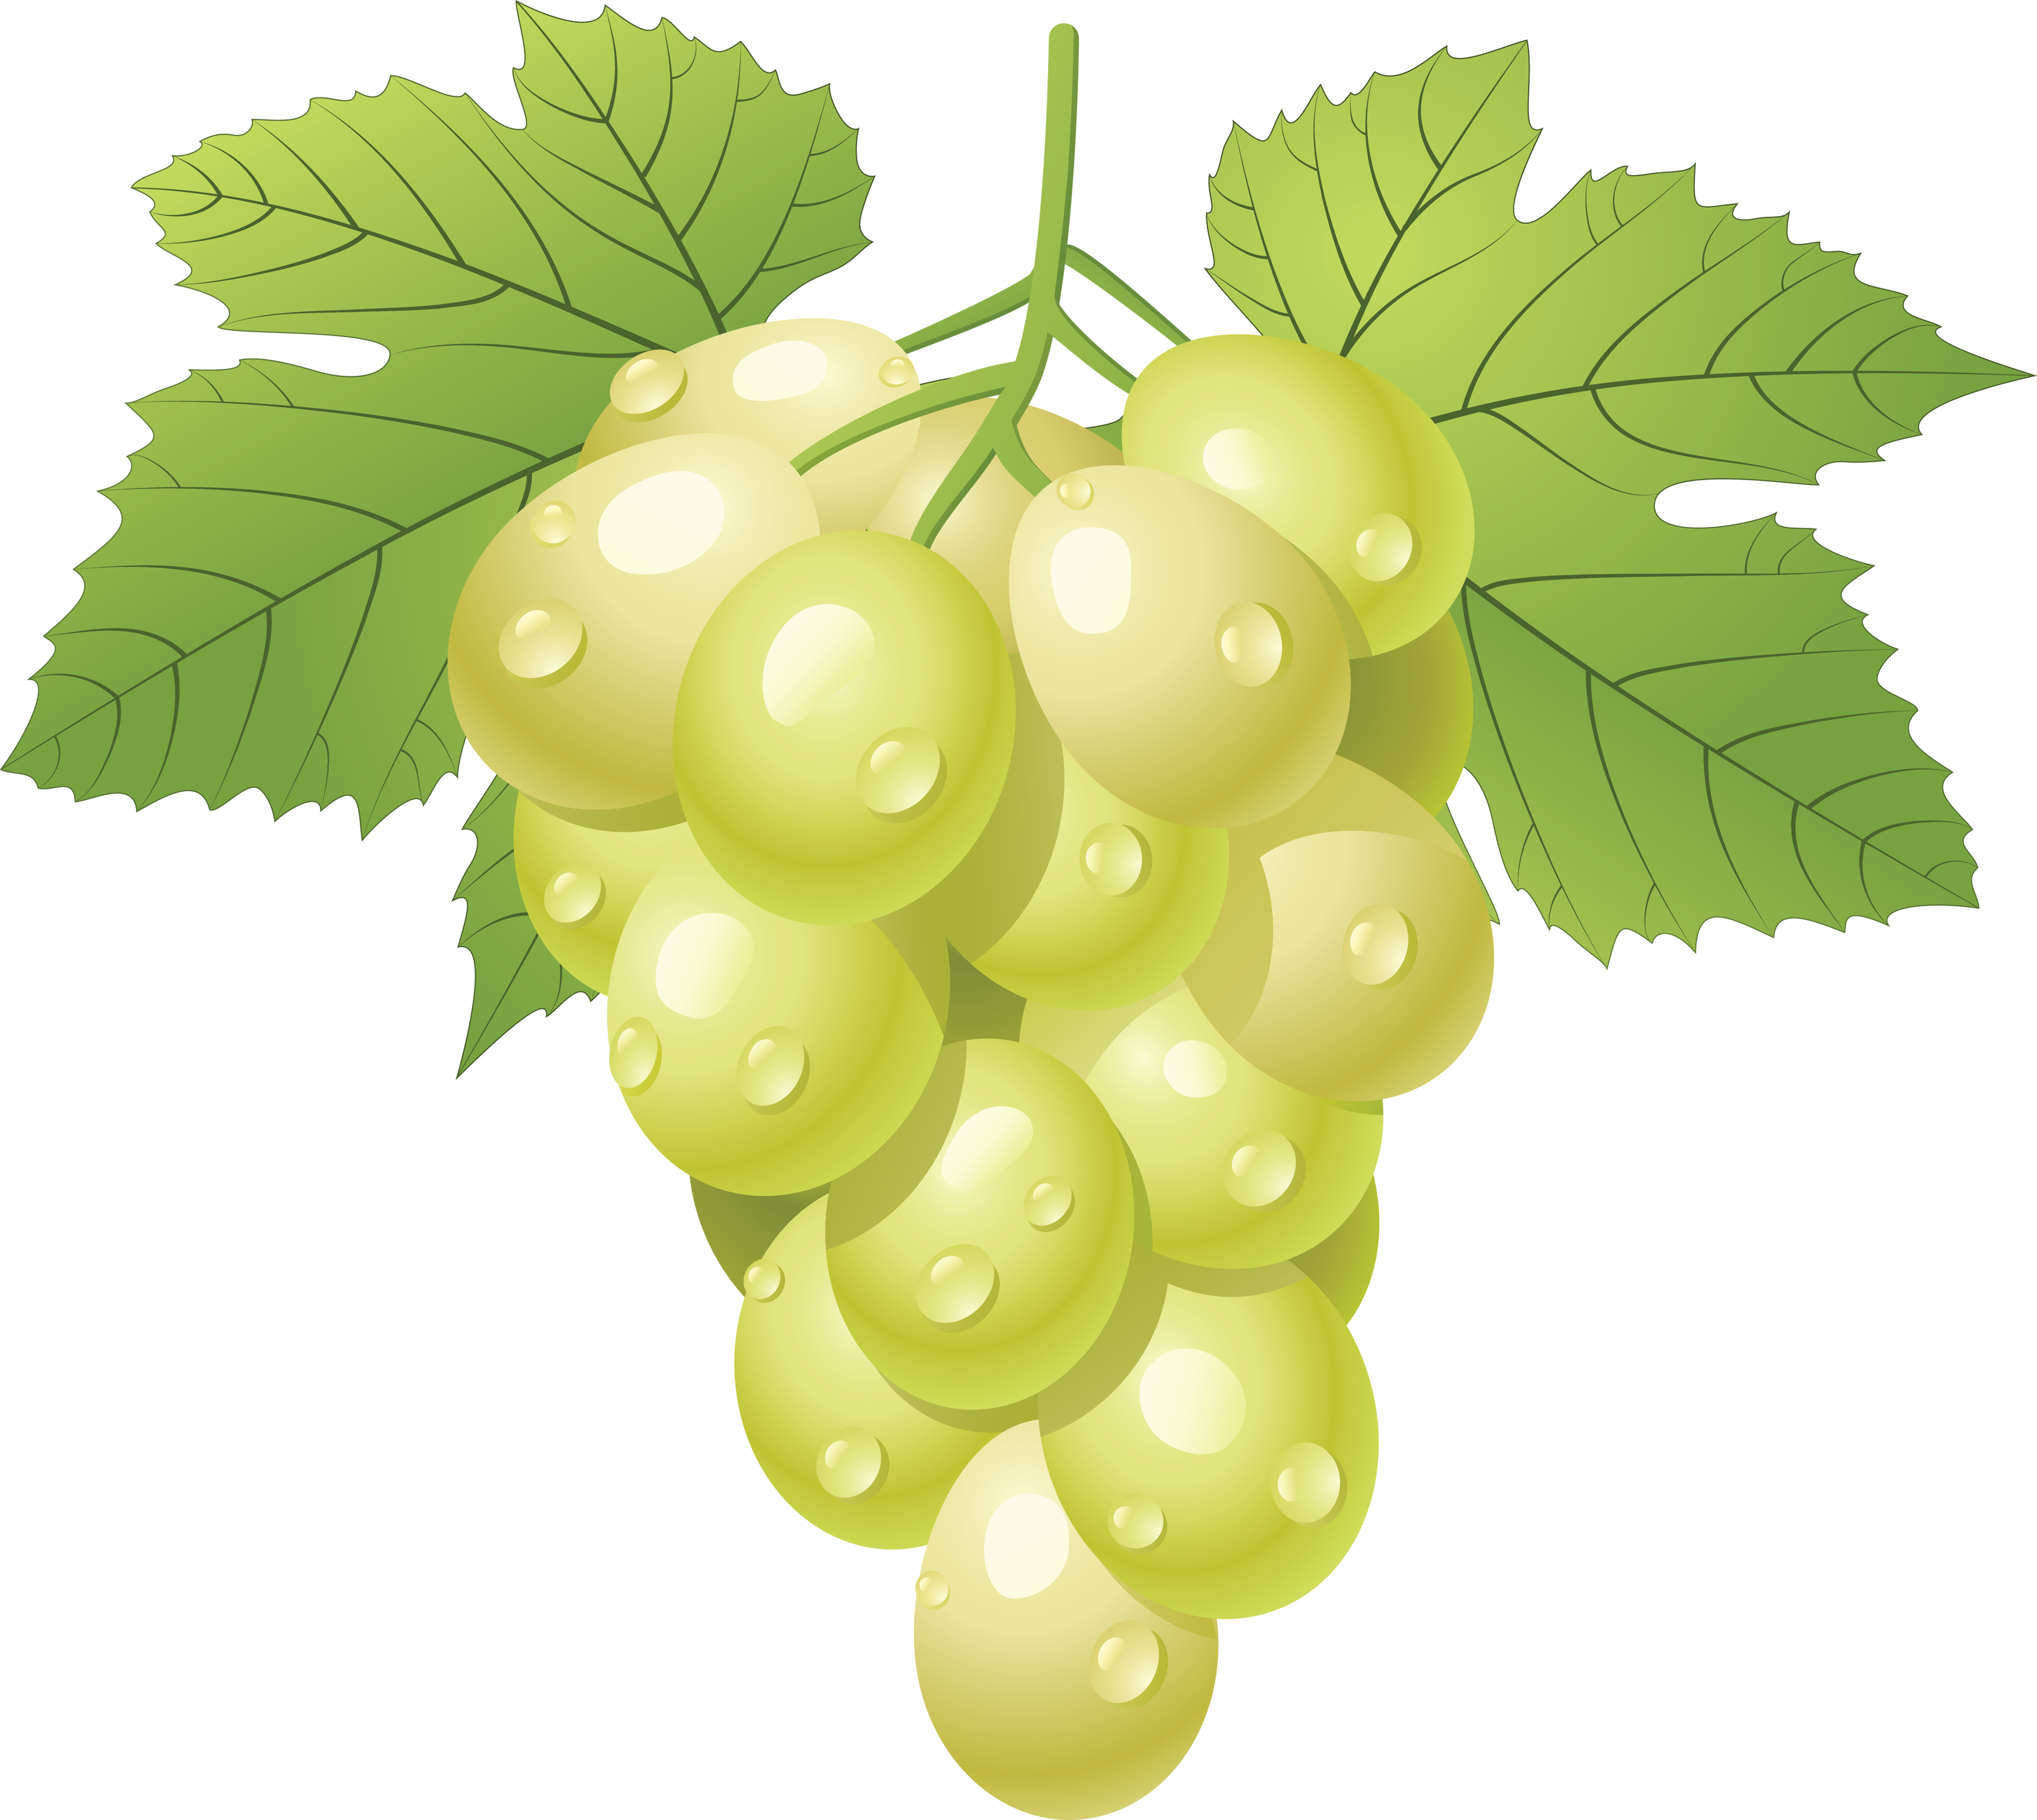 Pin by hopeless on. Grapes clipart yellow